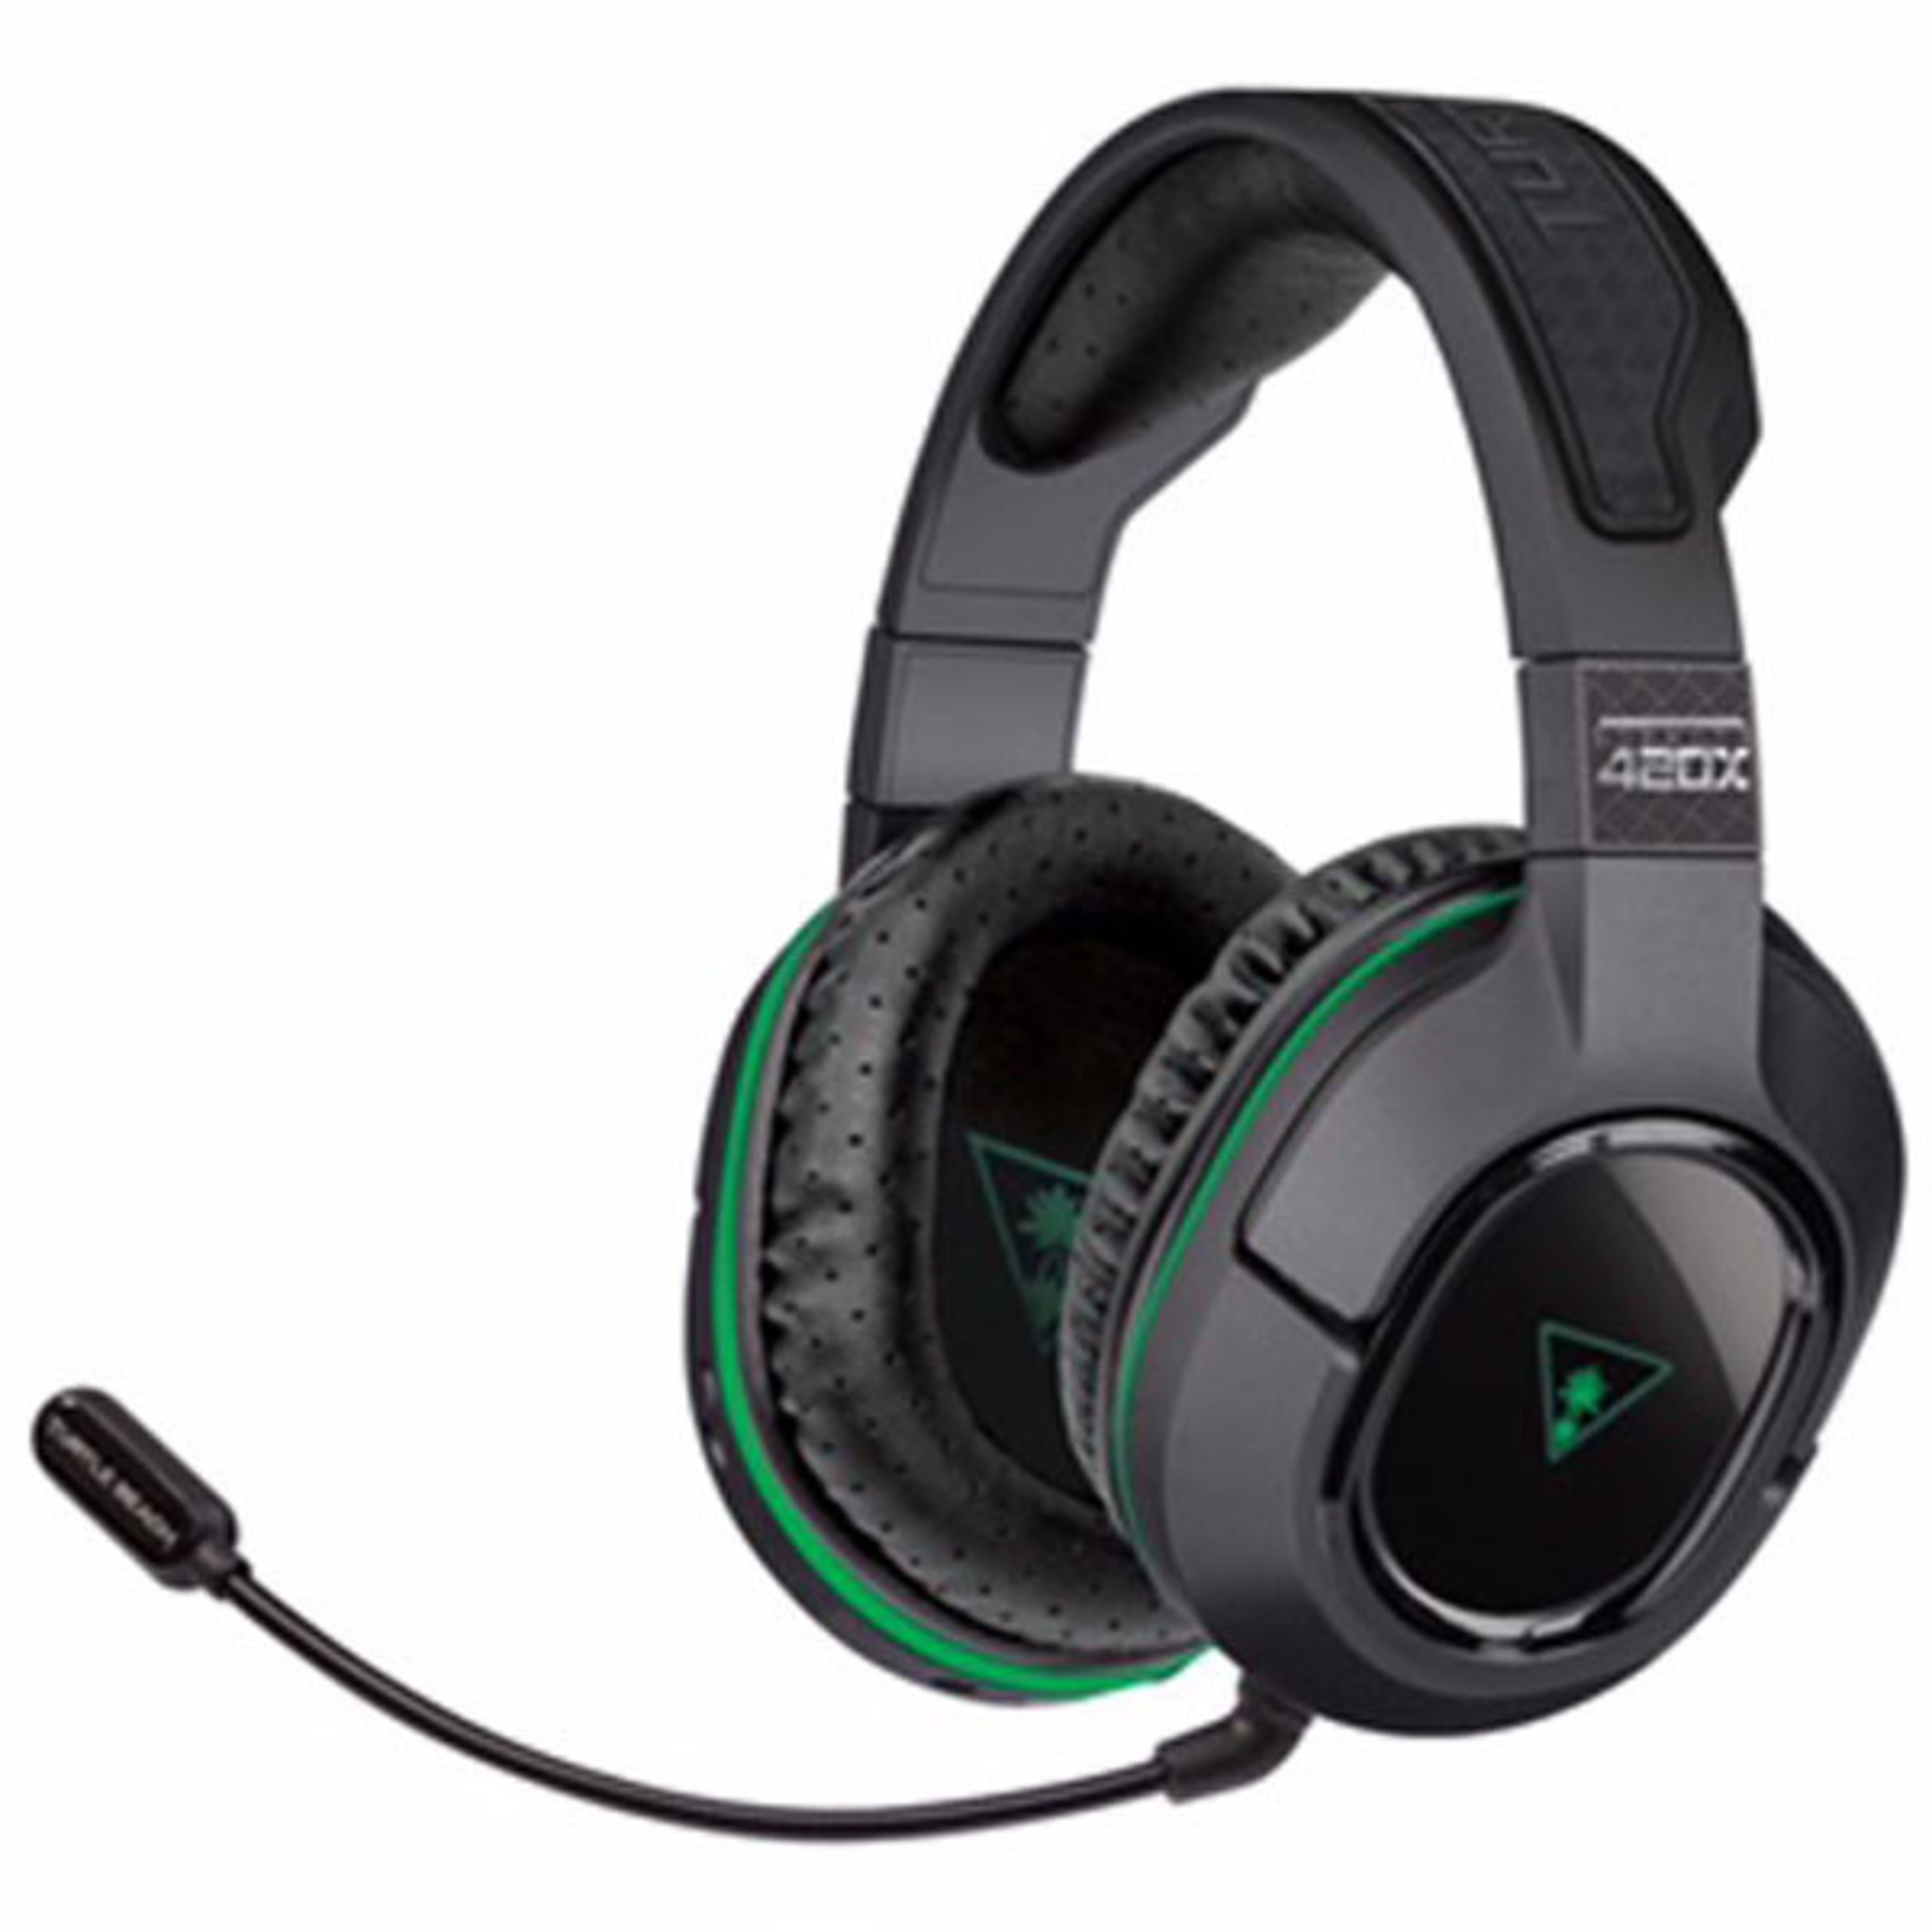 Officially Licensed for Xbox One, Turtle Beach's Stealth 420X Offers a Suite of High-Quality Features, Including 50mm Speakers, Synthetic Perforated Leather-Wrapped Ear-Cups, Mic Monitoring, Independent Game and Chat Audio Controls, Plus a 15 Hour Rechargeable Battery and More